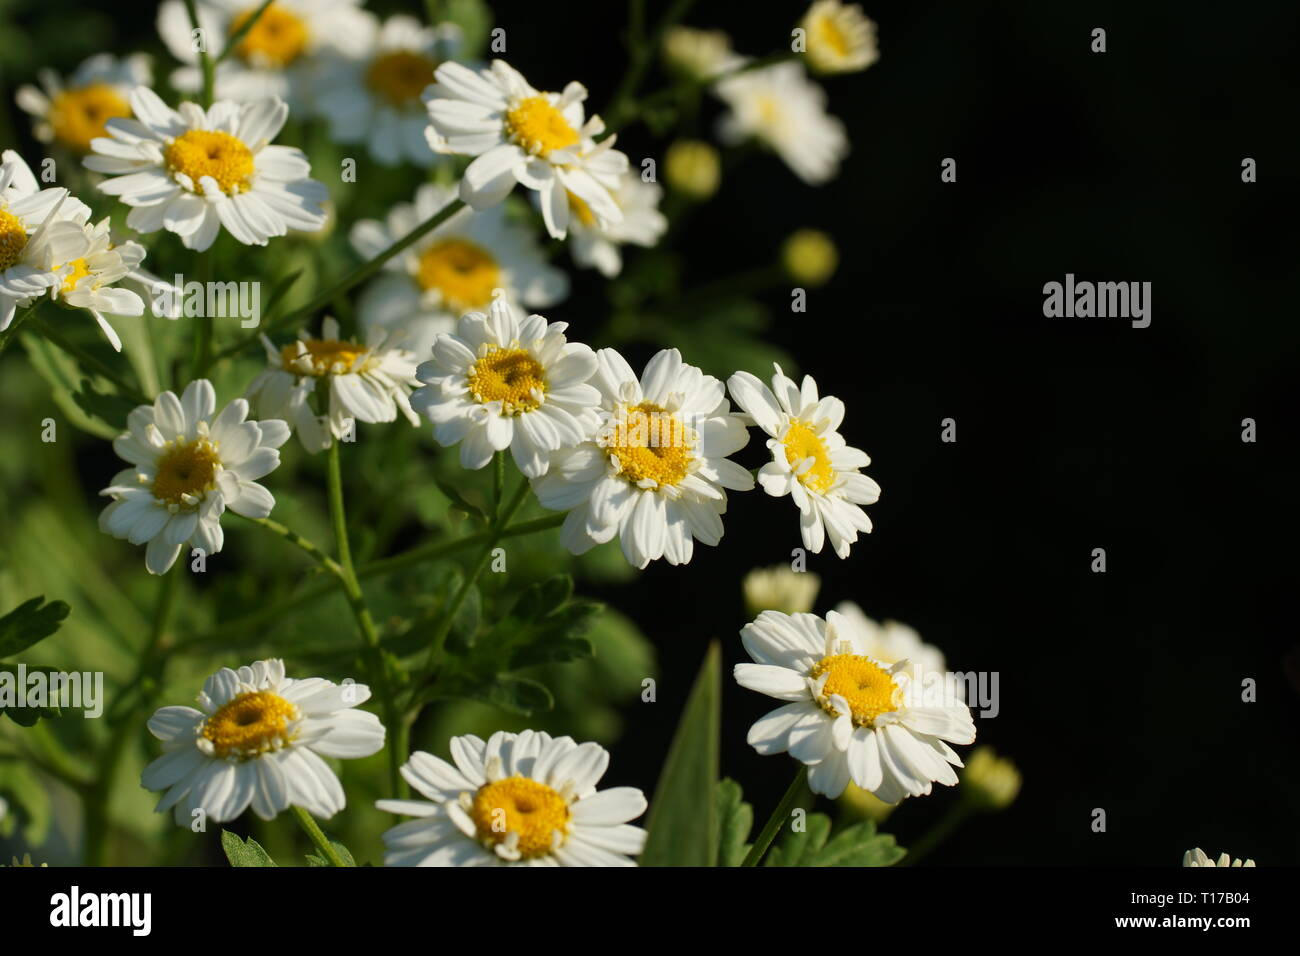 Pyrethrum (Chrysanthemum or Tanacetum) which are cultivated as ornamentals for their showy flower heads. - Stock Image